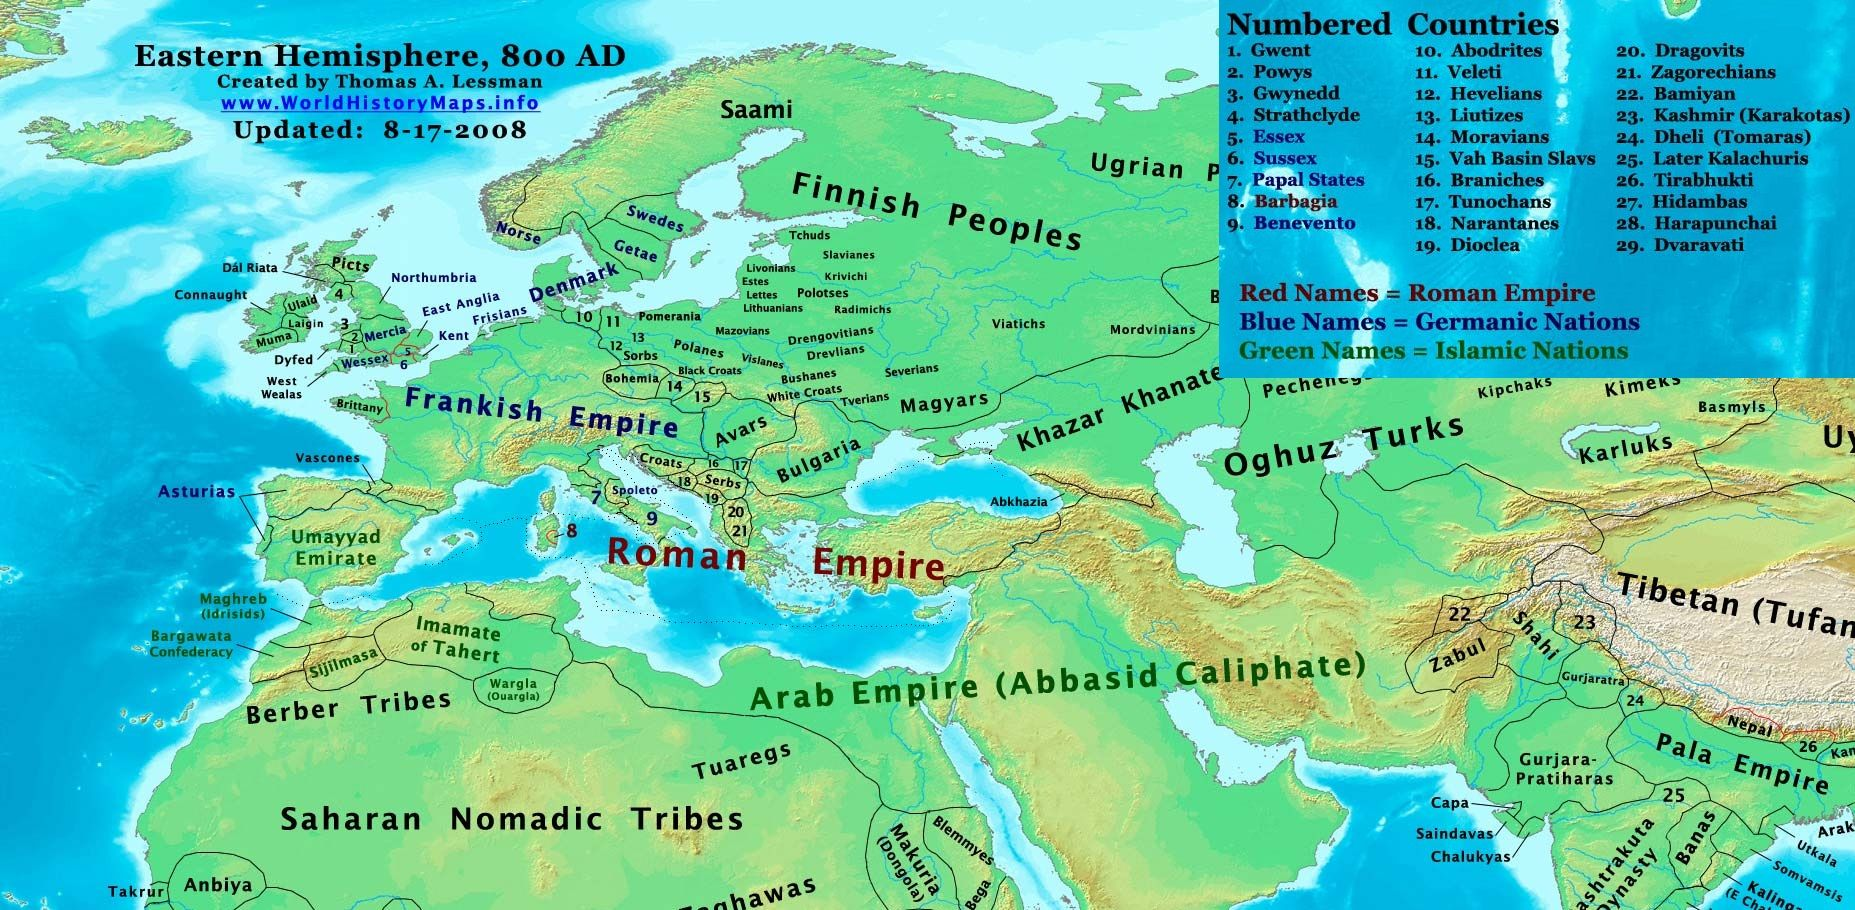 Europe and the near east 800ad worldhistorymaps infog 1855910 europe and the near east 800ad worldhistorymaps info gumiabroncs Image collections